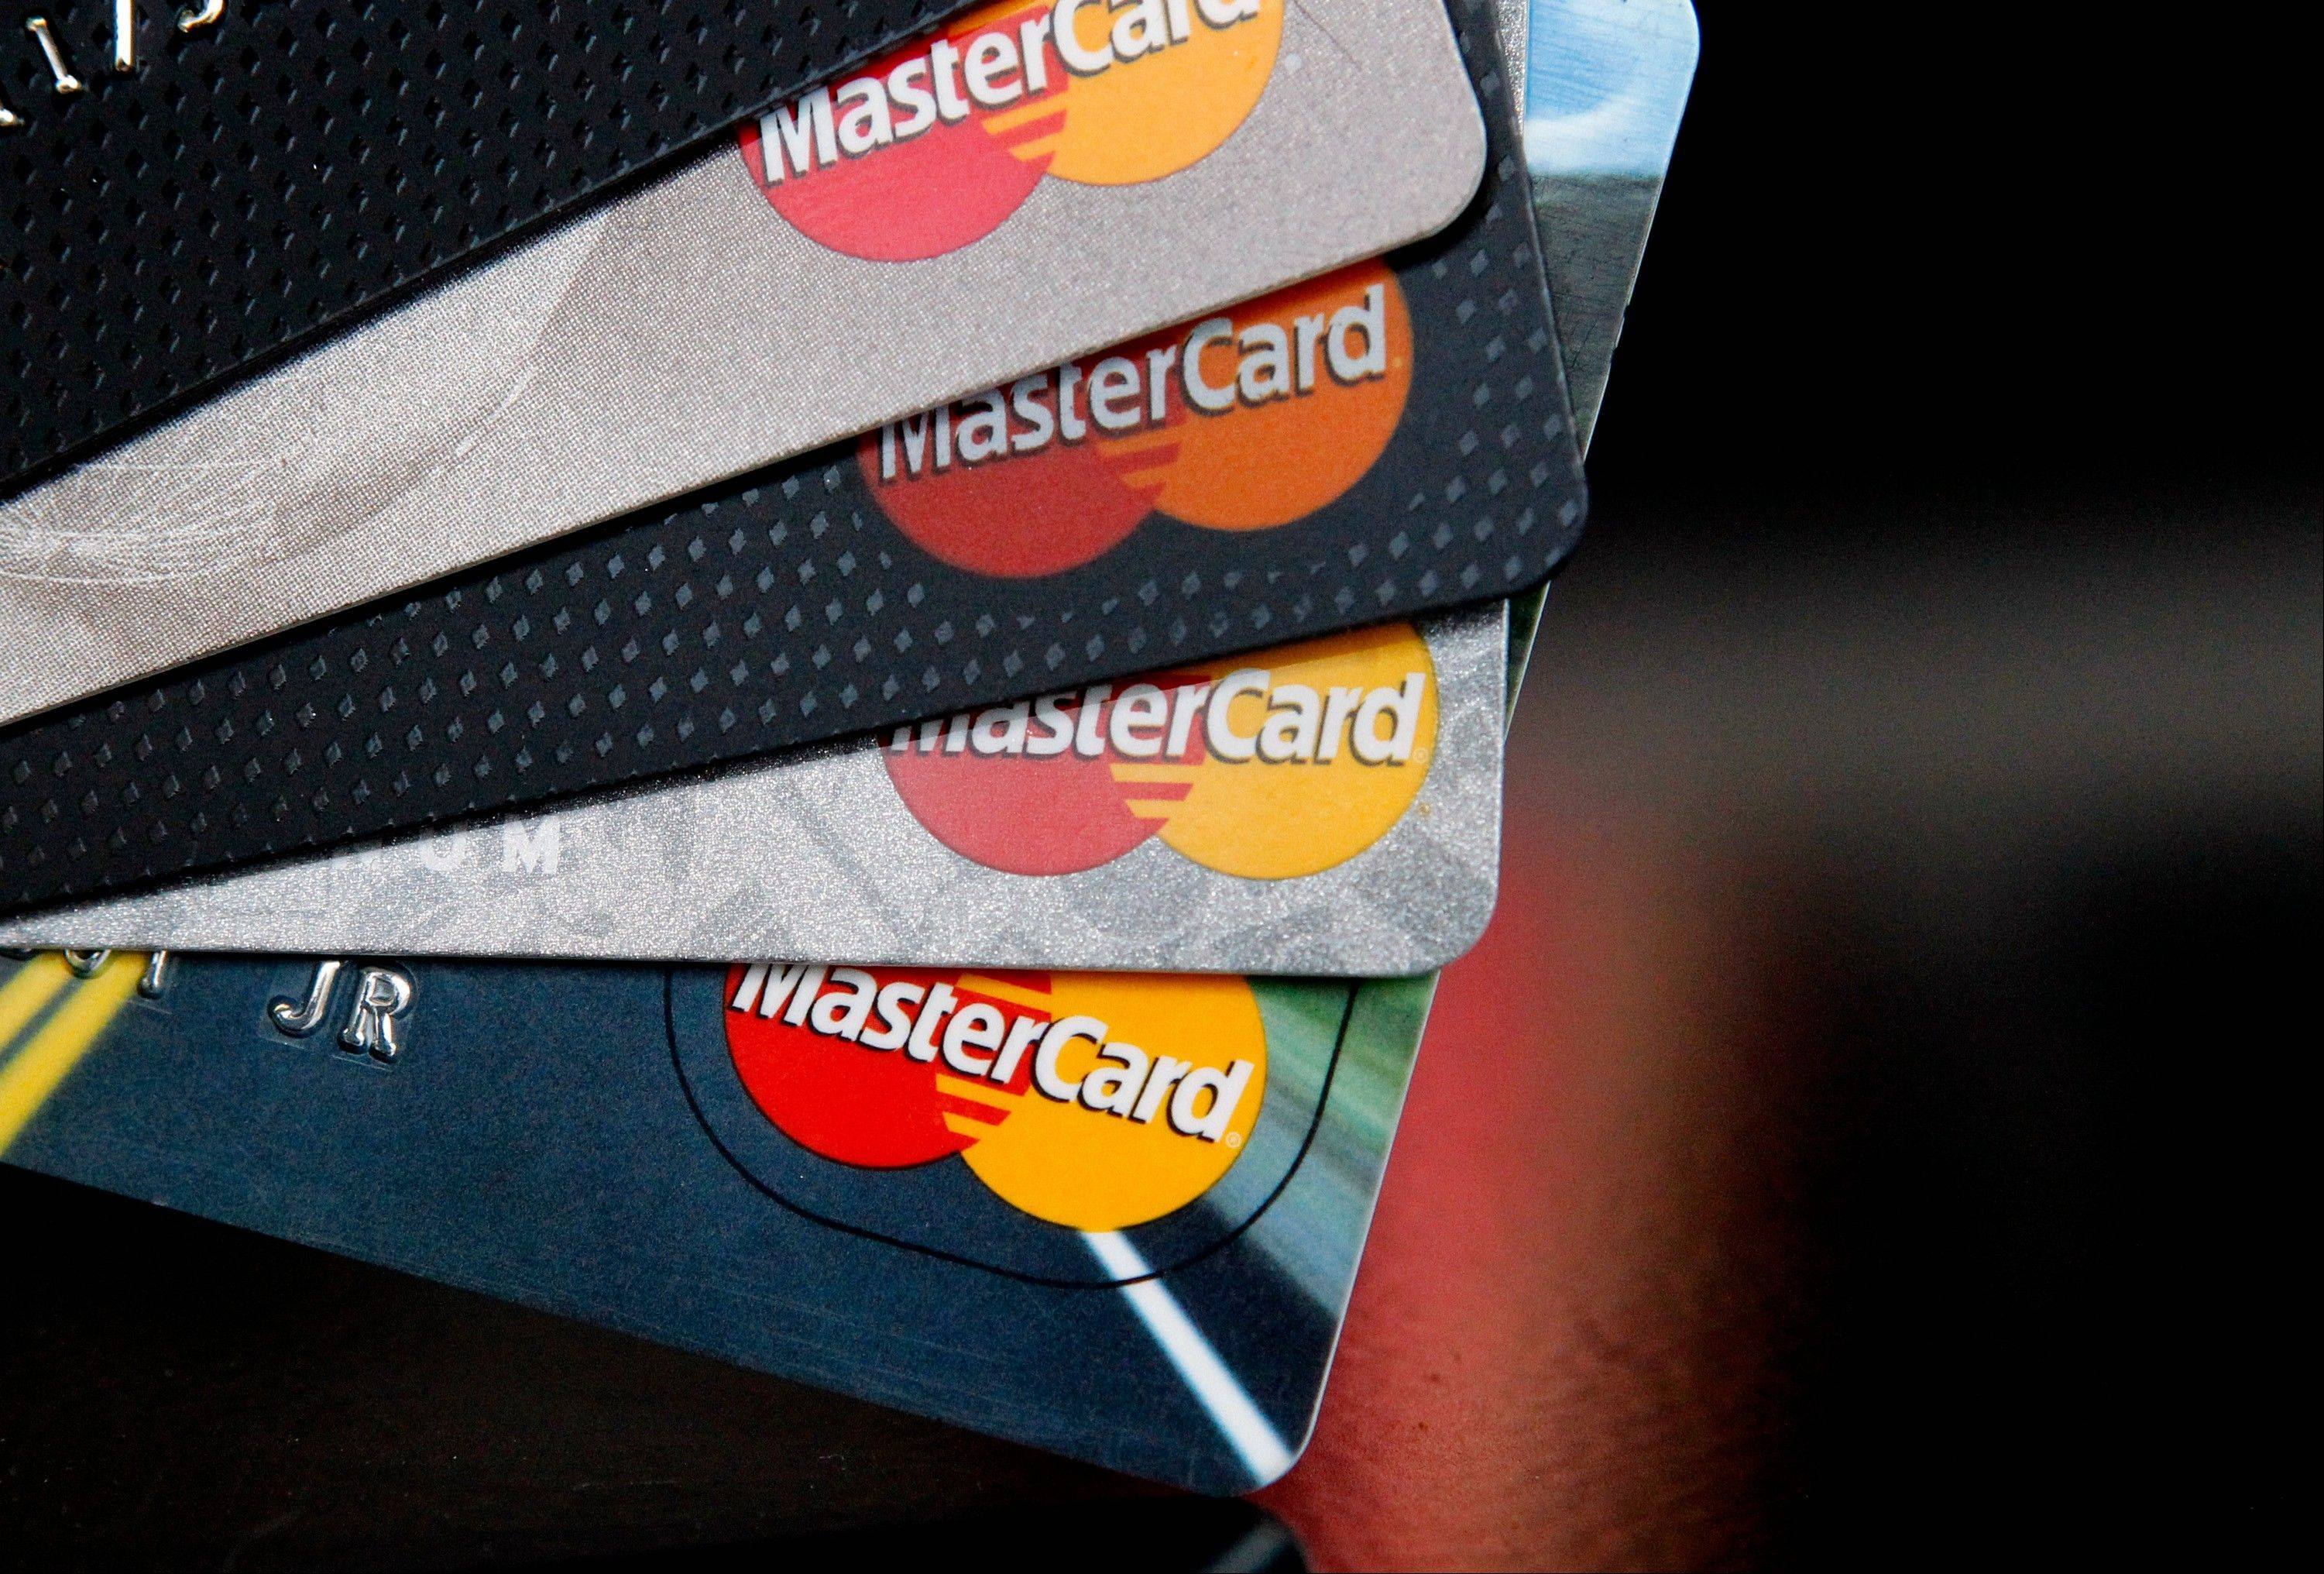 MasterCard�s fourth-quarter earnings climbed 3 percent as higher revenue countered a jump in expenses, but results missed expectations.